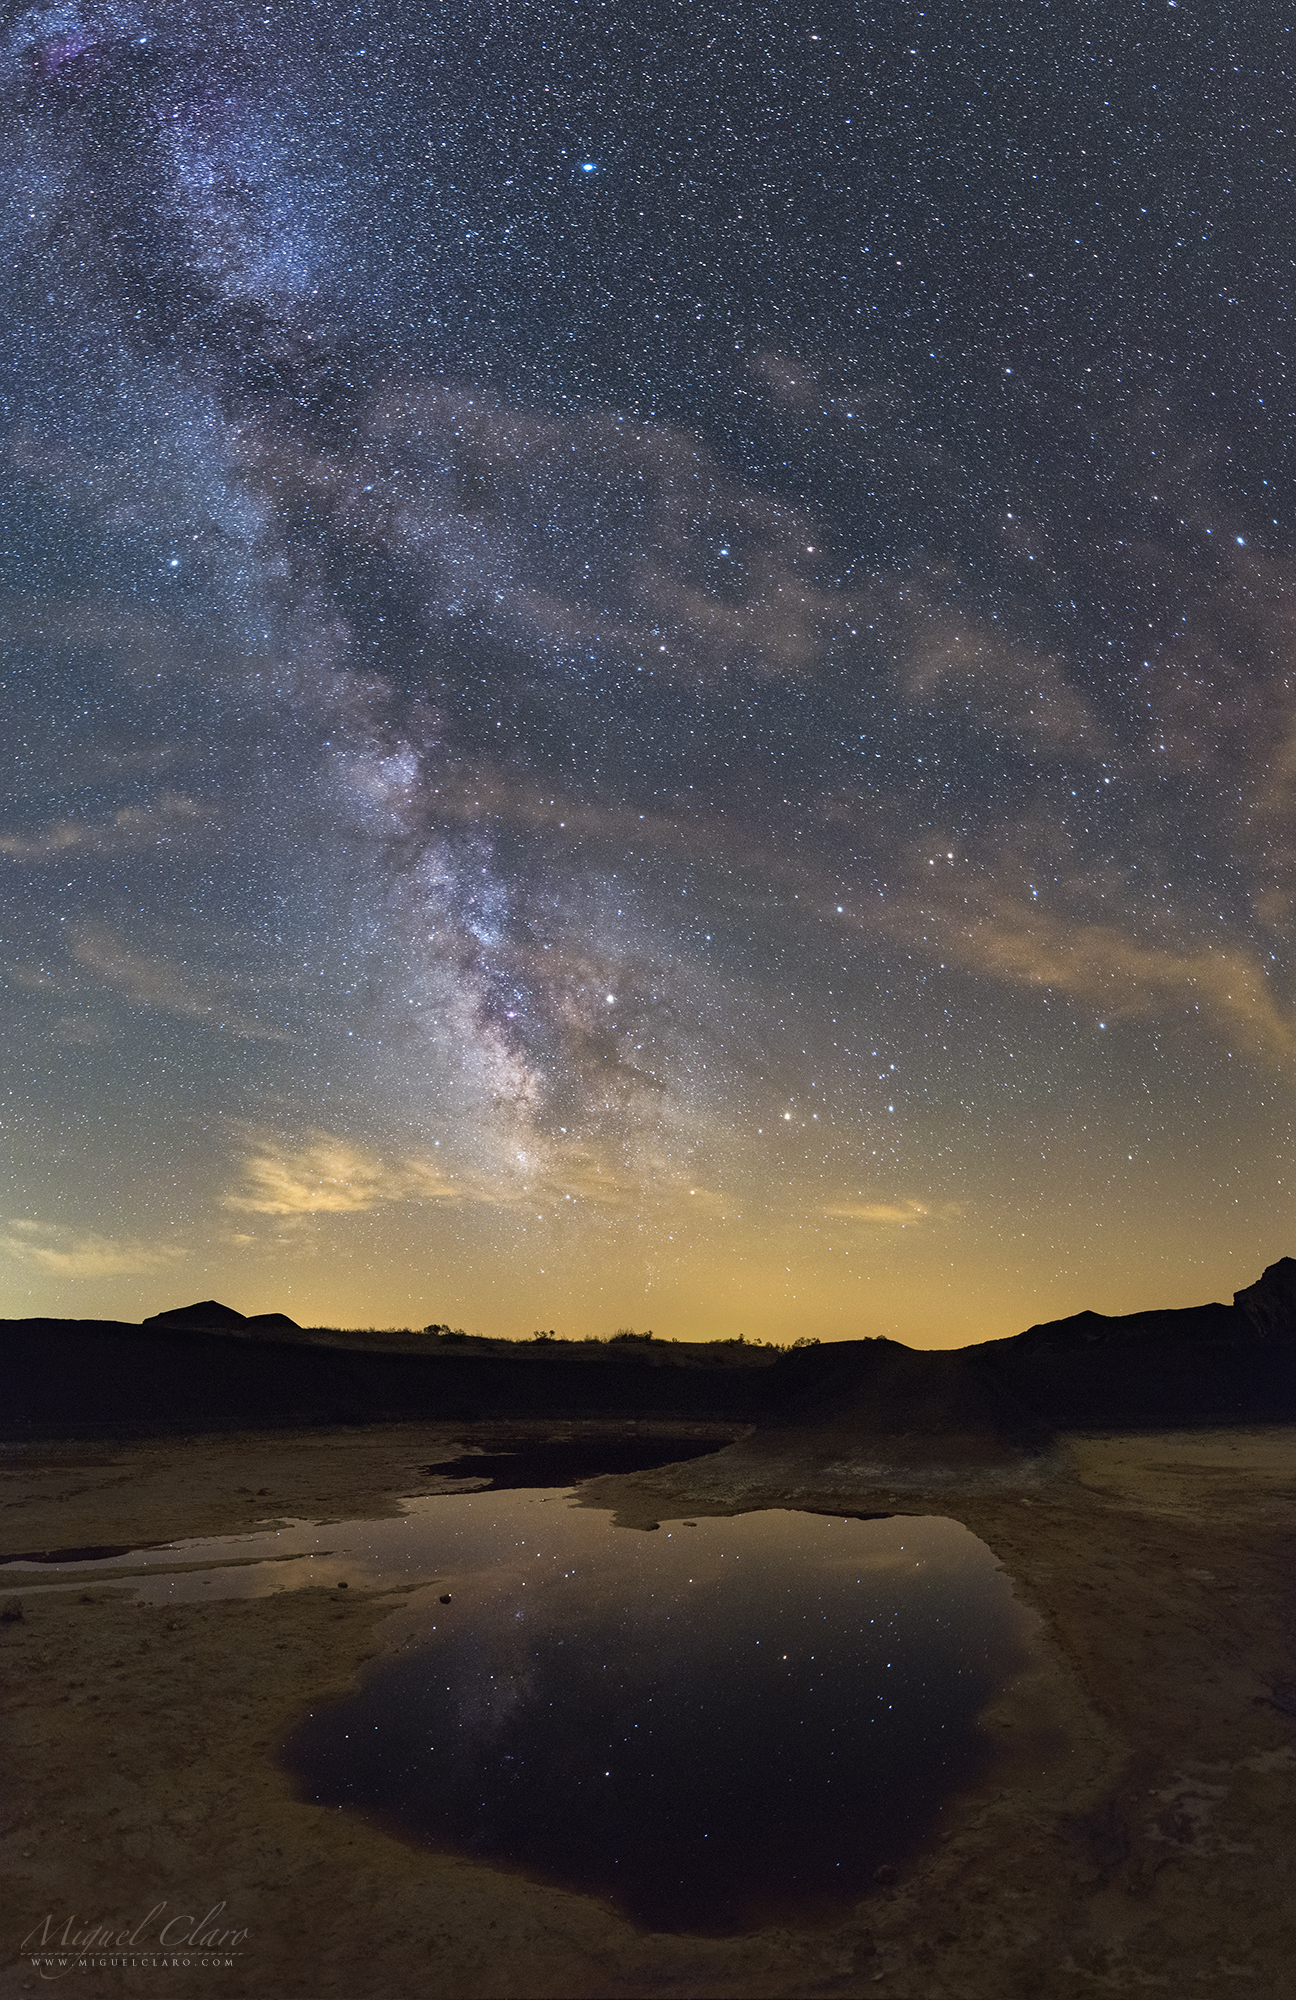 Alquevas dark sky reserve portfolio categories astrophotography a view of the milky way arm mixed with some clouds with planet saturn shinning against the galaxy core near scorpius constellation fandeluxe Gallery